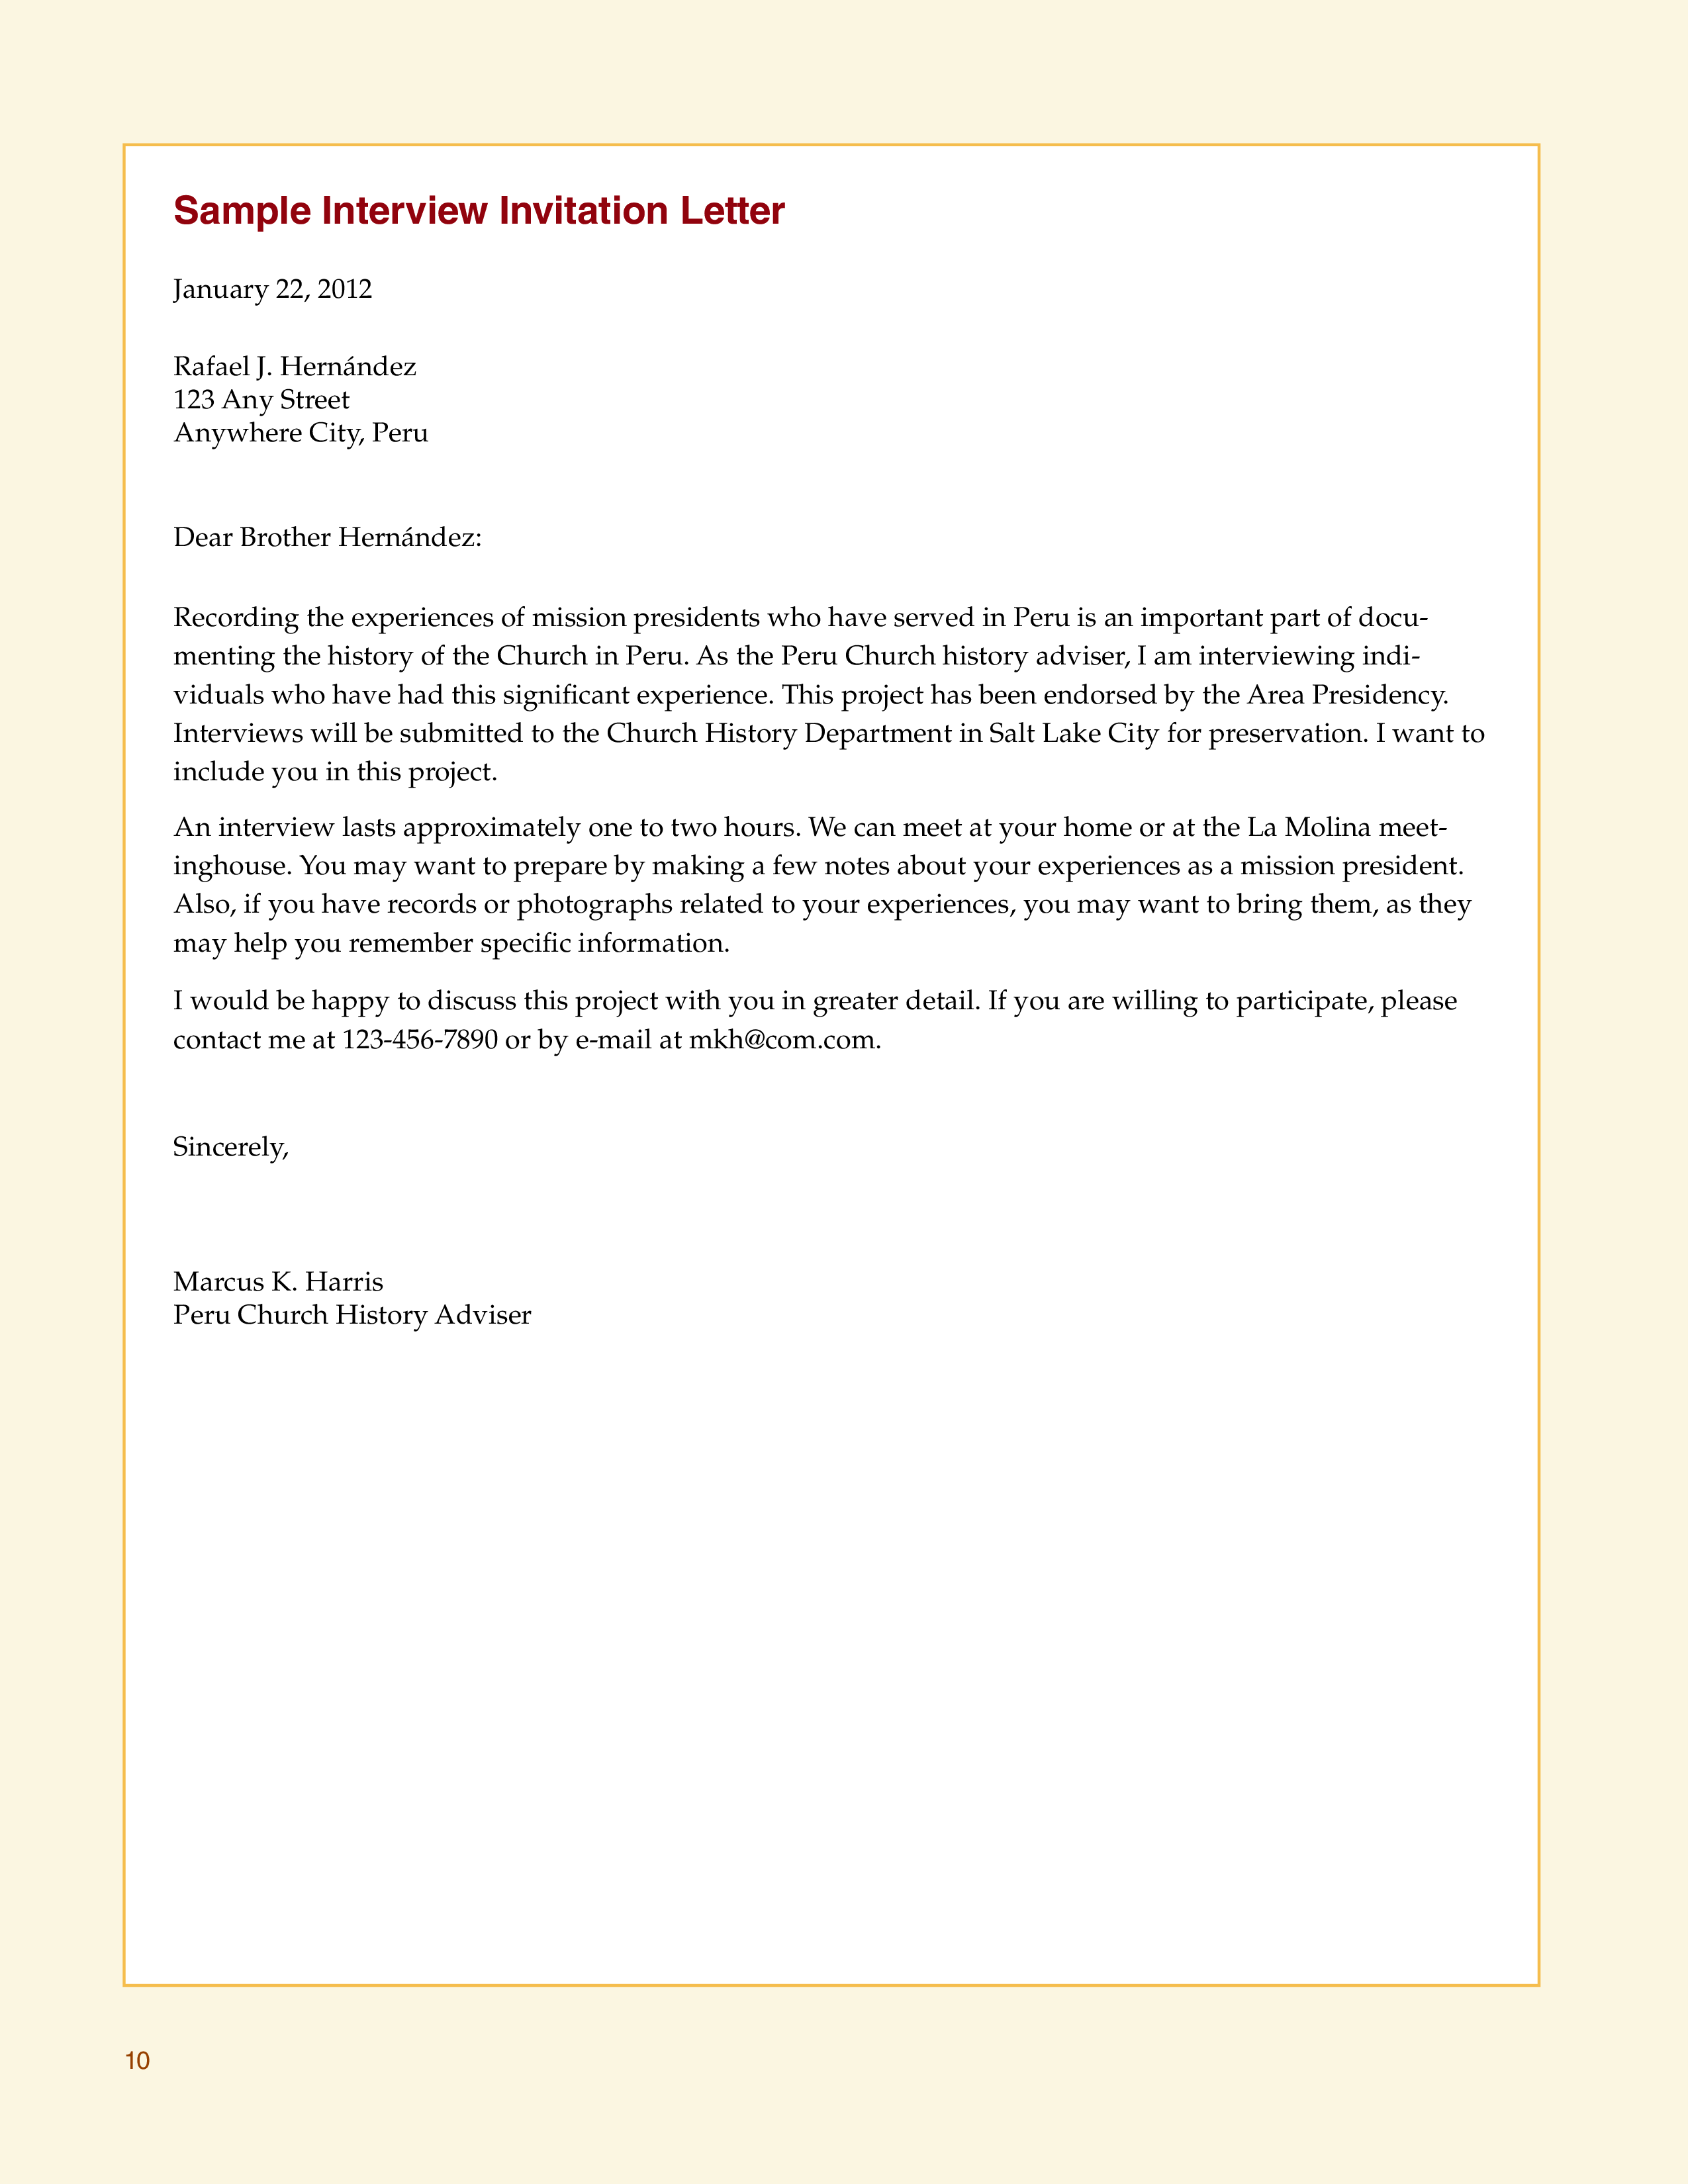 Free Interview Invitation Letter Templates At Allbusinesstemplates